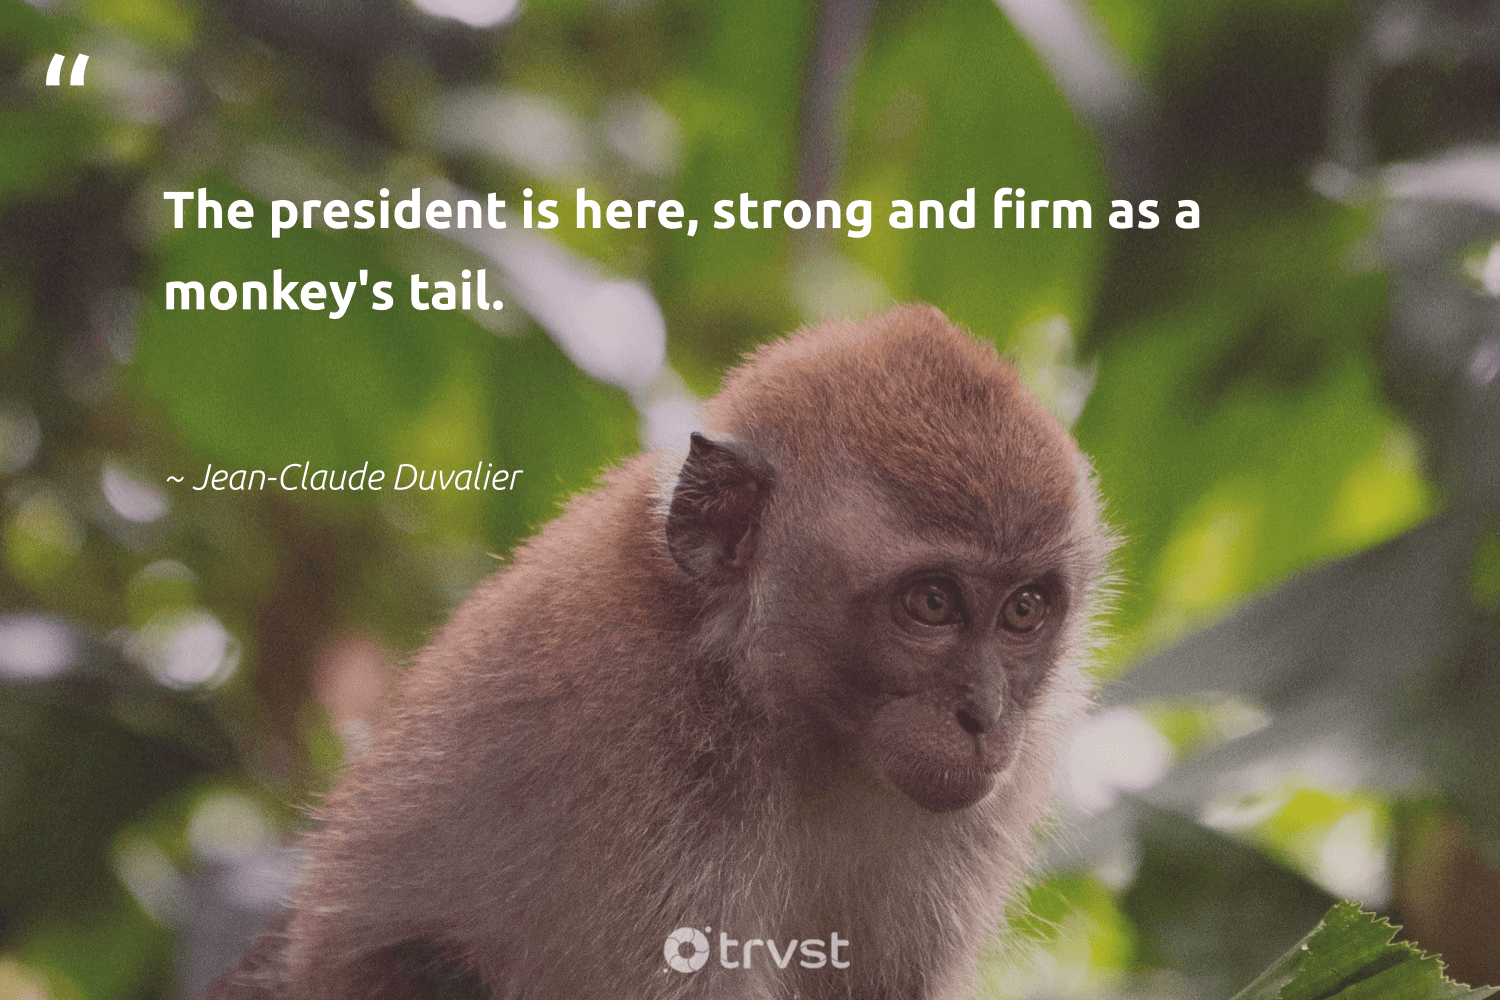 """""""The president is here, strong and firm as a monkey's tail.""""  - Jean-Claude Duvalier #trvst #quotes #monkeys #wild #gogreen #protectnature #dotherightthing #perfectnature #bethechange #amazingworld #collectiveaction #majesticwildlife"""